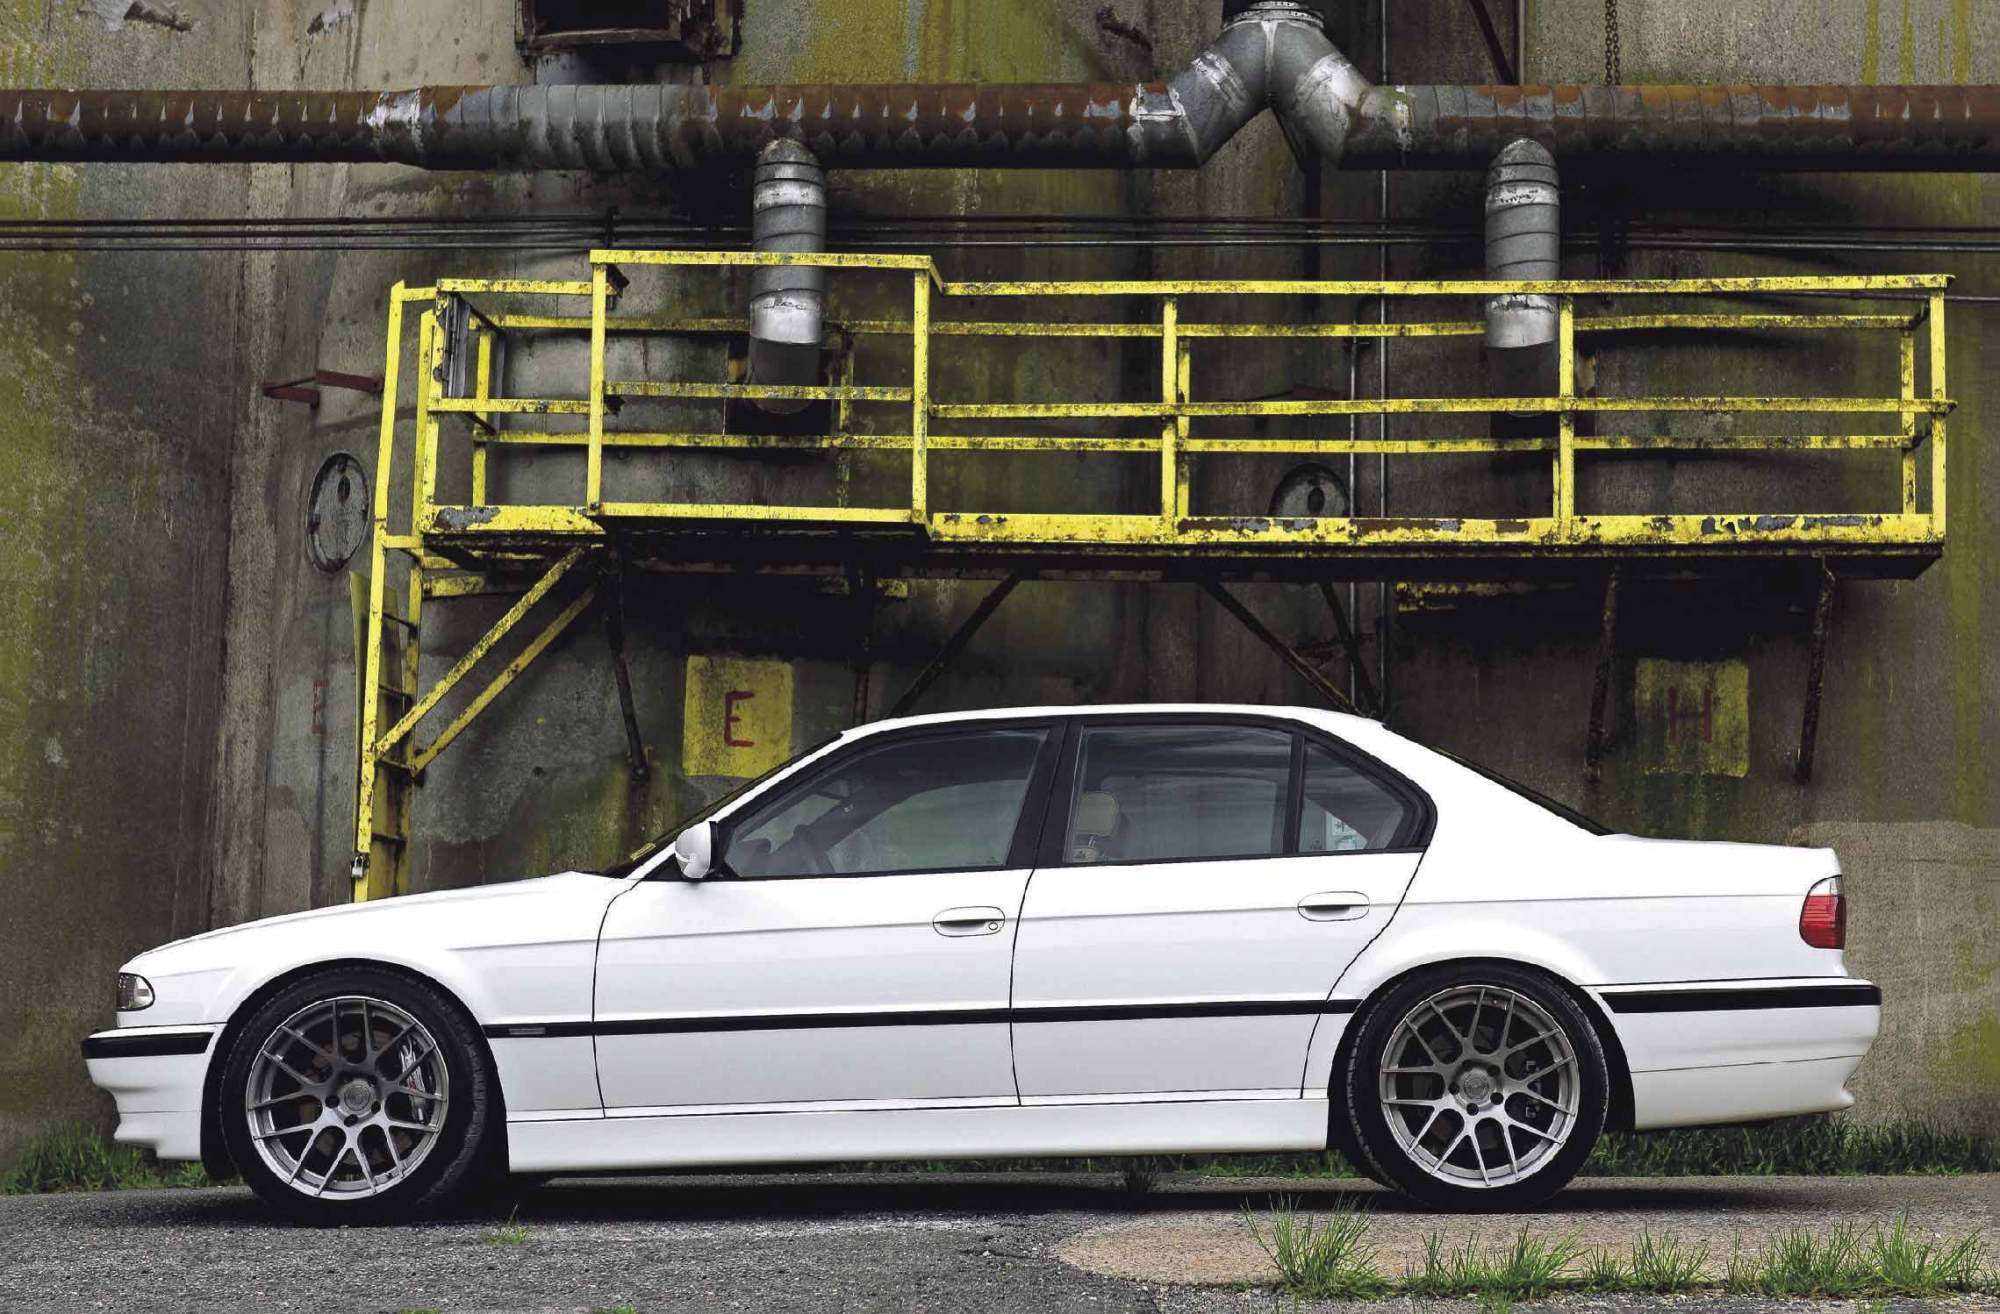 hight resolution of bmw 7 series e38 still looks great especially lowered on h r springs smaller 92mm pulley gives more boost maxflow race blow off valve